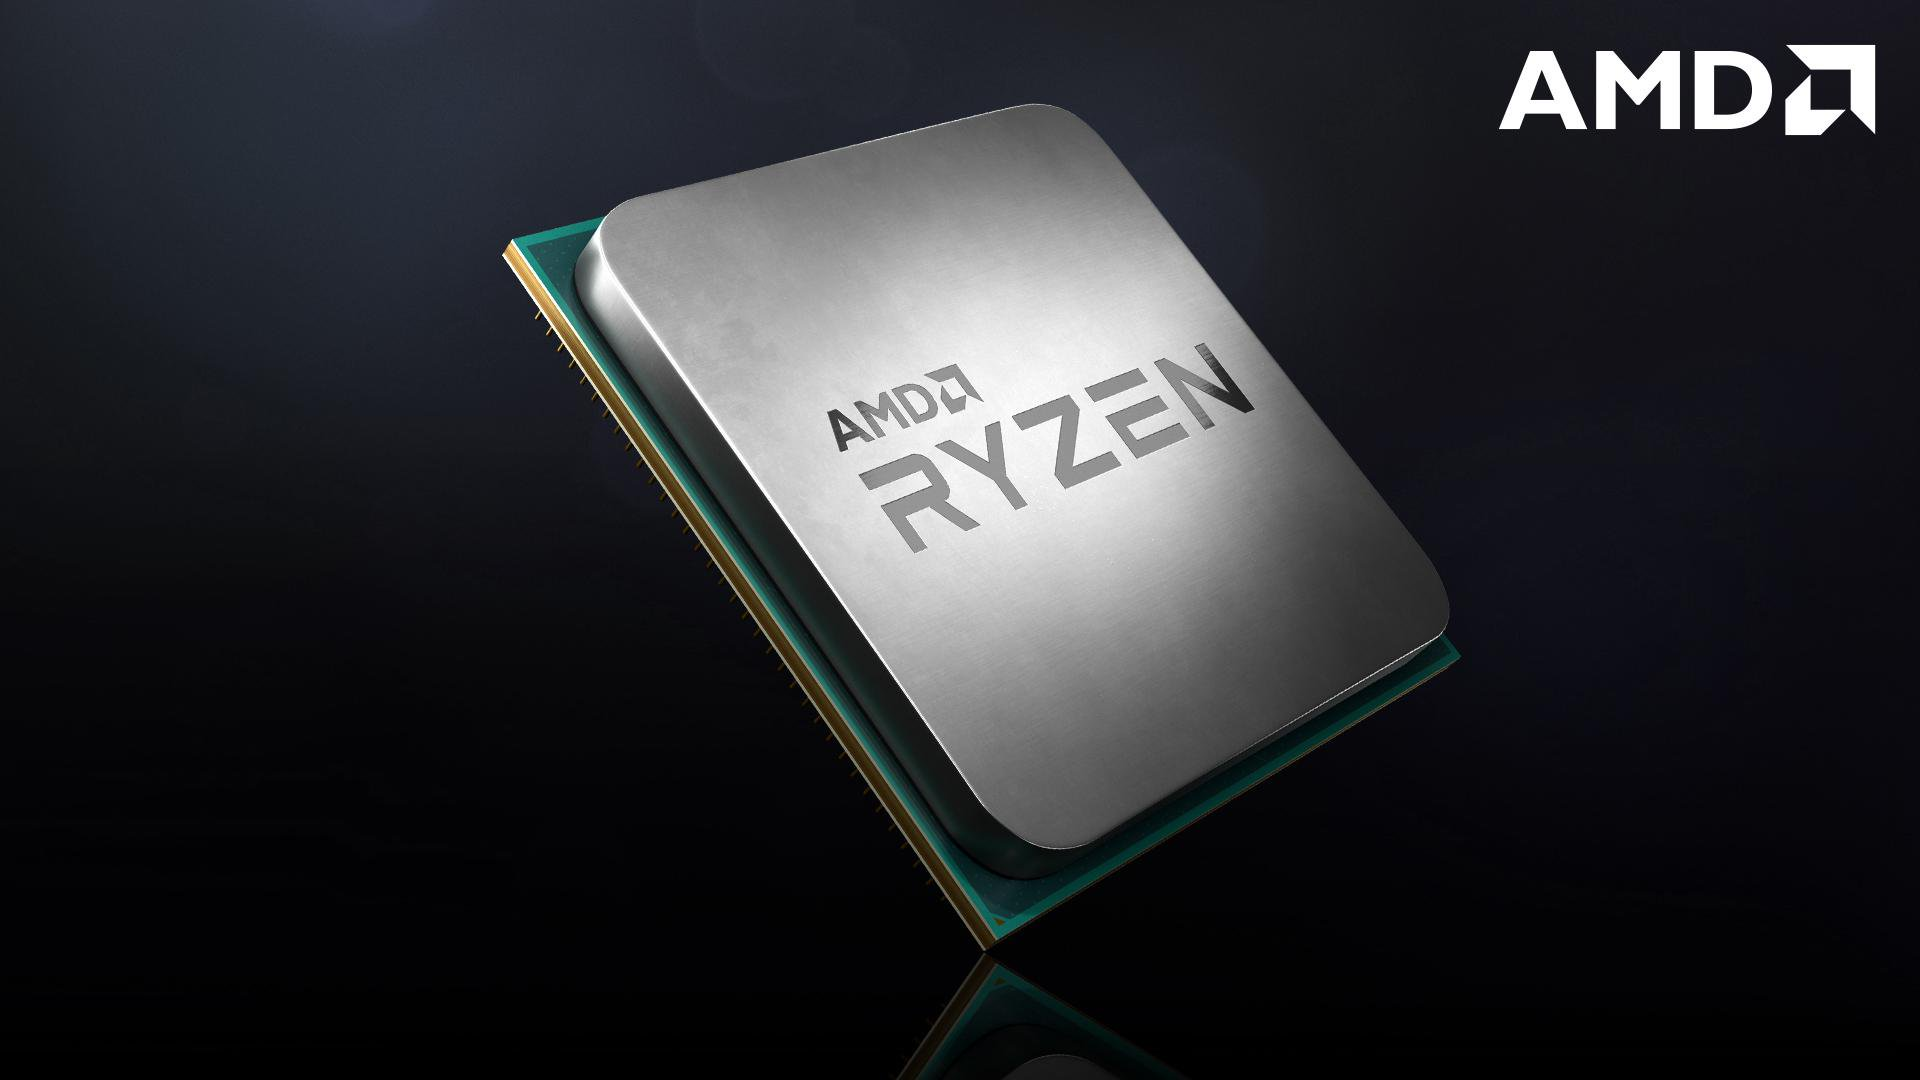 Amd Ryzen 3800xt Vs Ryzen 7 3800x Specification And Benchmarks Just Android